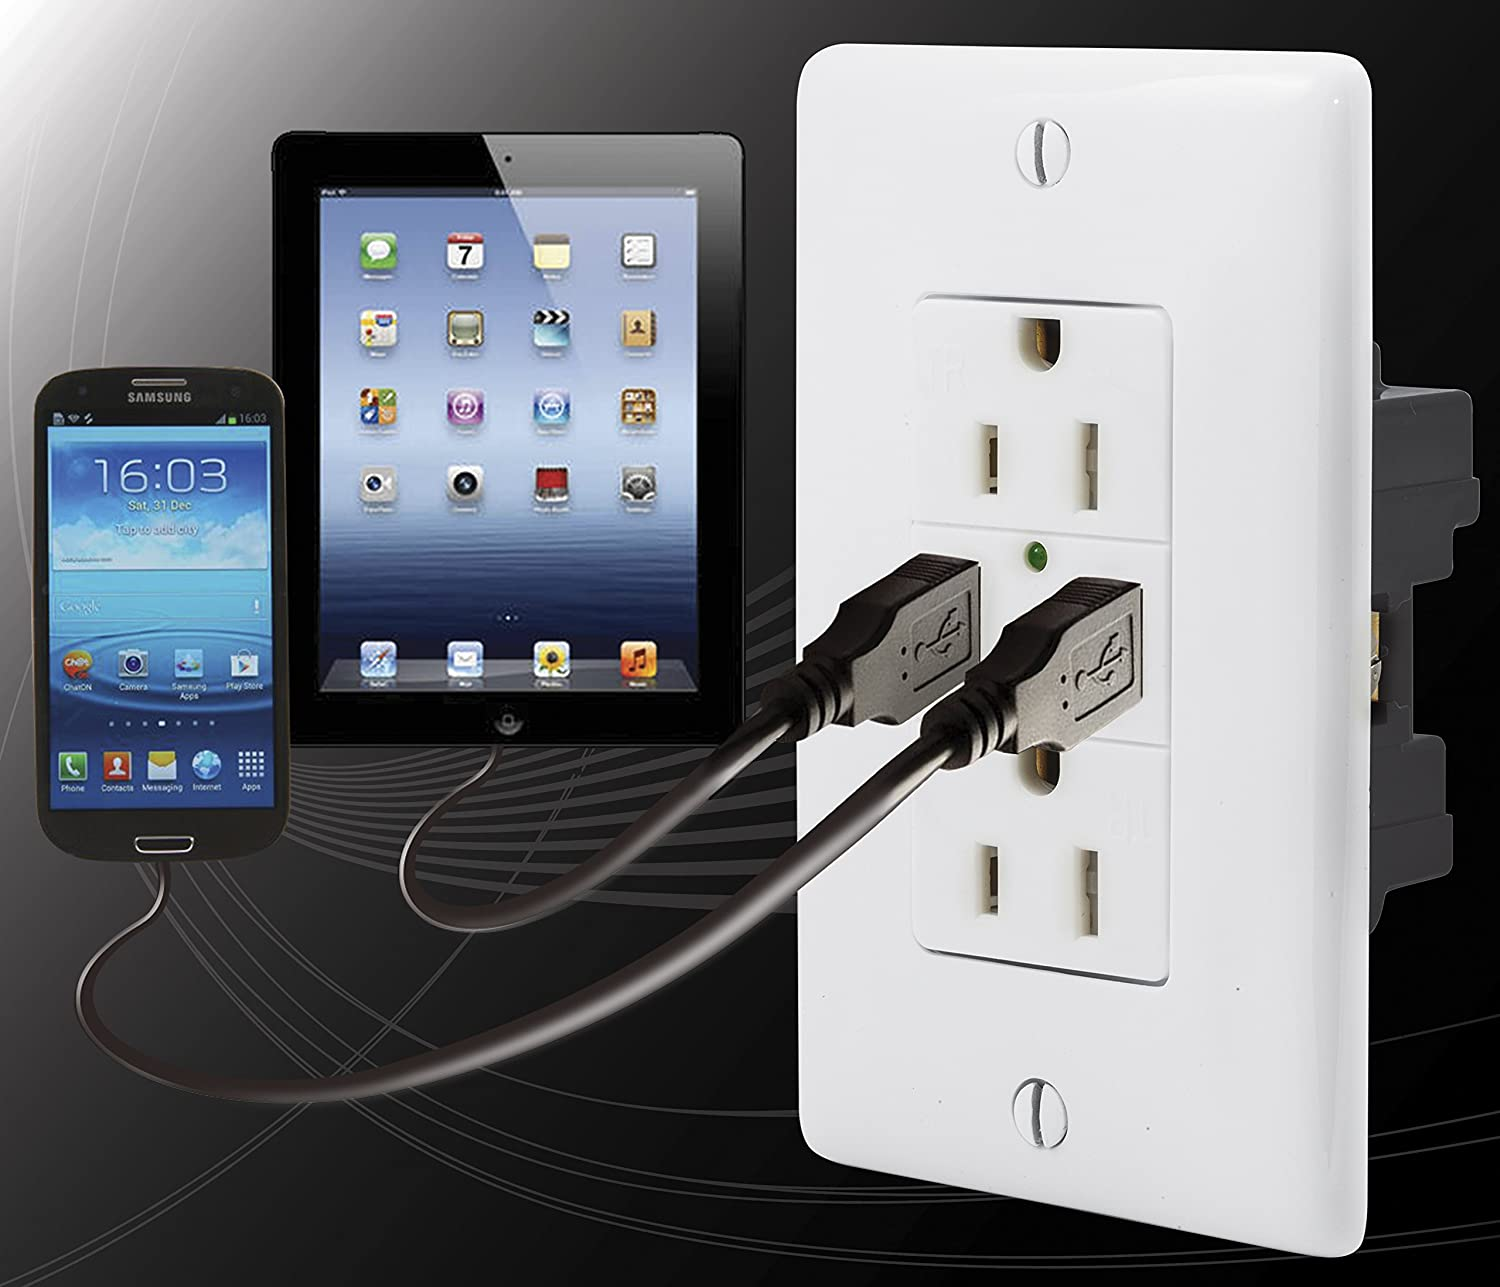 Bryant Electric Usbb15w 38 Amp High Power Dual Usb Charger 15 Wiring Diagram Further Samsung Galaxy Tab 2 On 0 125 Volt Tamper Resistant Duplex Receptacle White Electrical Outlets